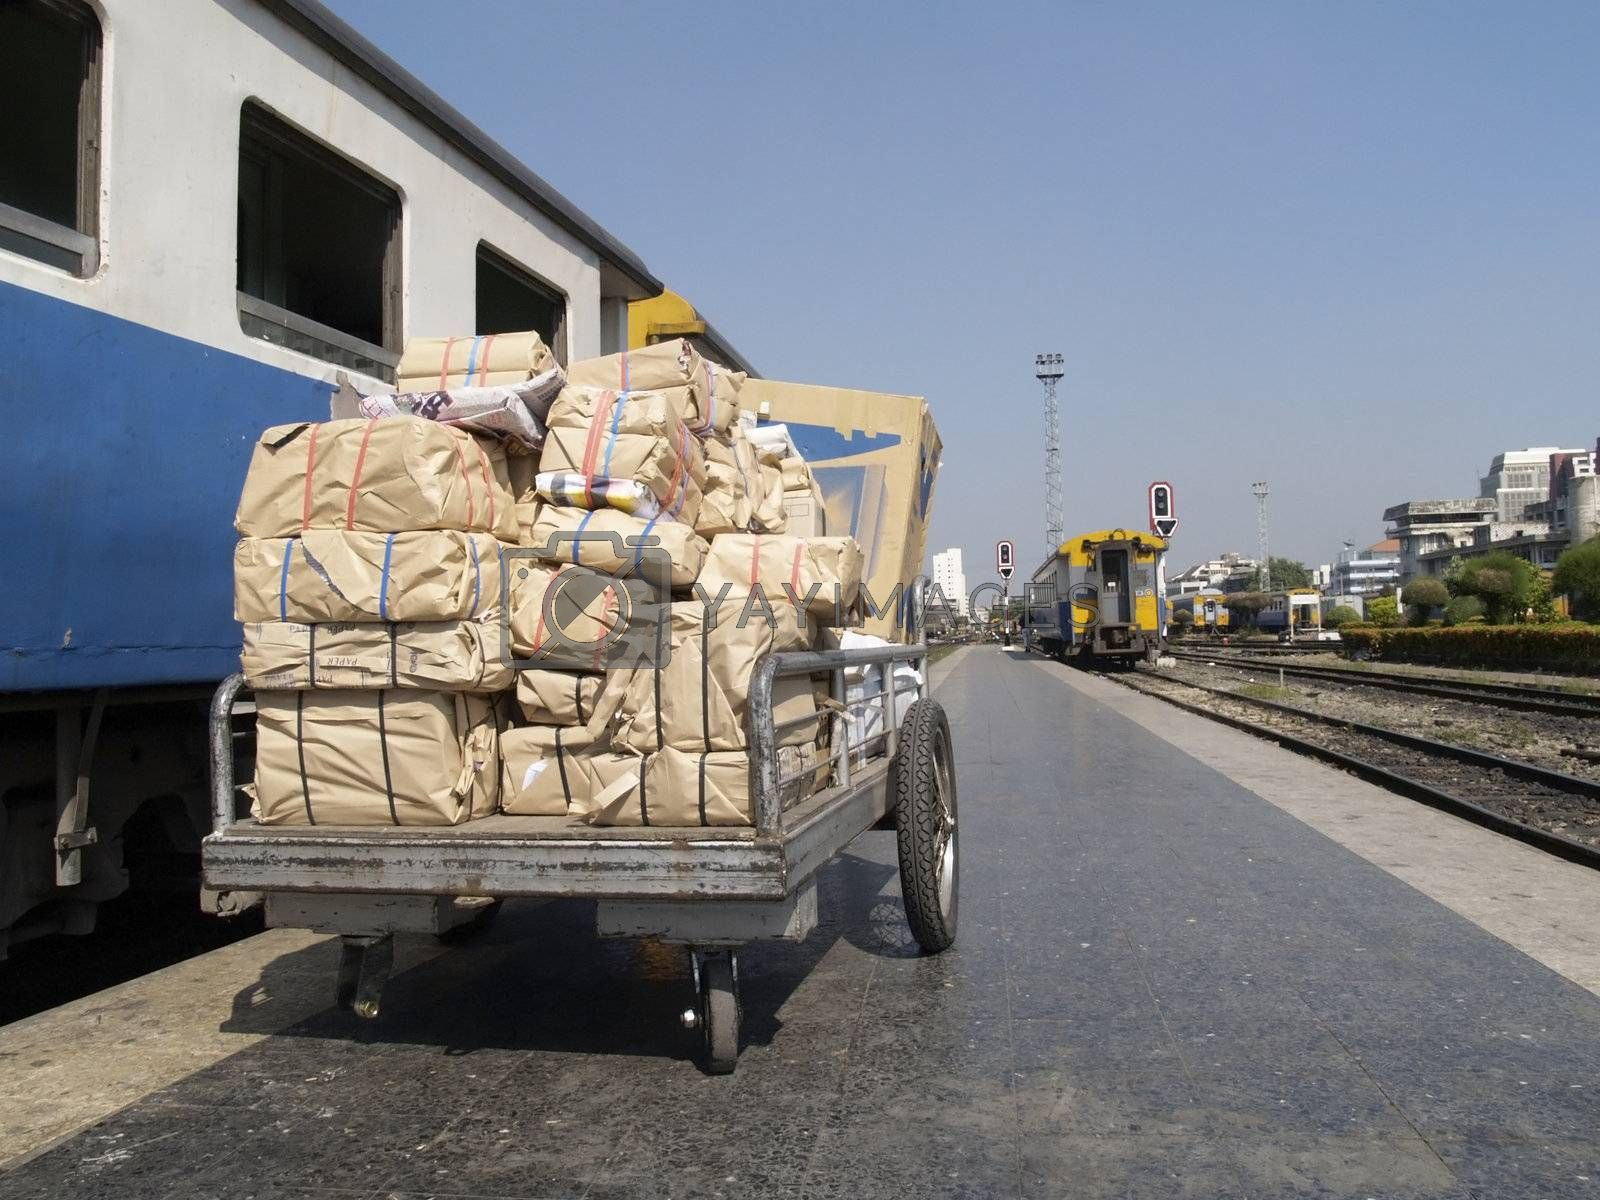 Packages at a railway station by epixx